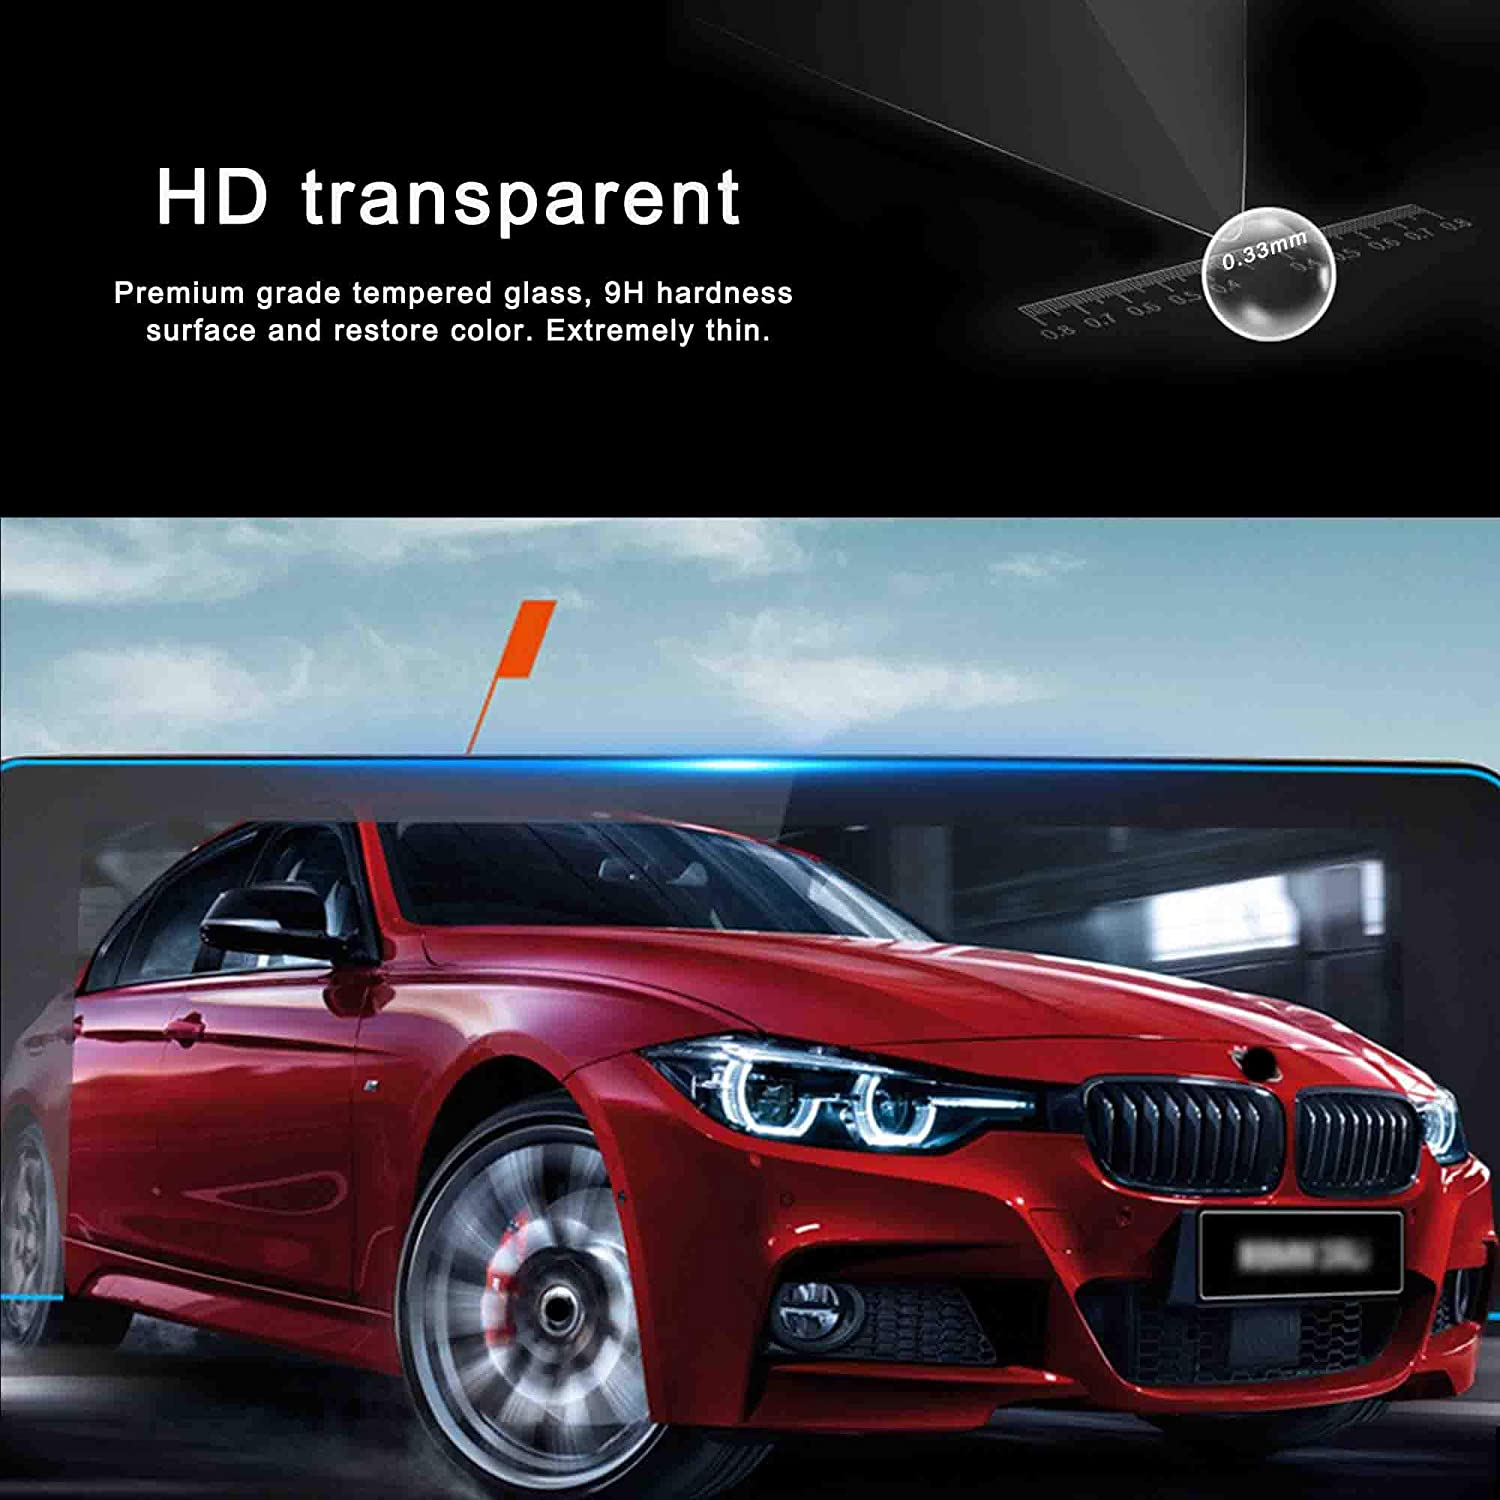 HD Clear Screen Protector for 2013-2018 BMW 3 Series Tempered Glass Against Scratch 1PCS WINKA Navigation Screen Protector Compatible with F30 F31 F32 F33 F34 F36